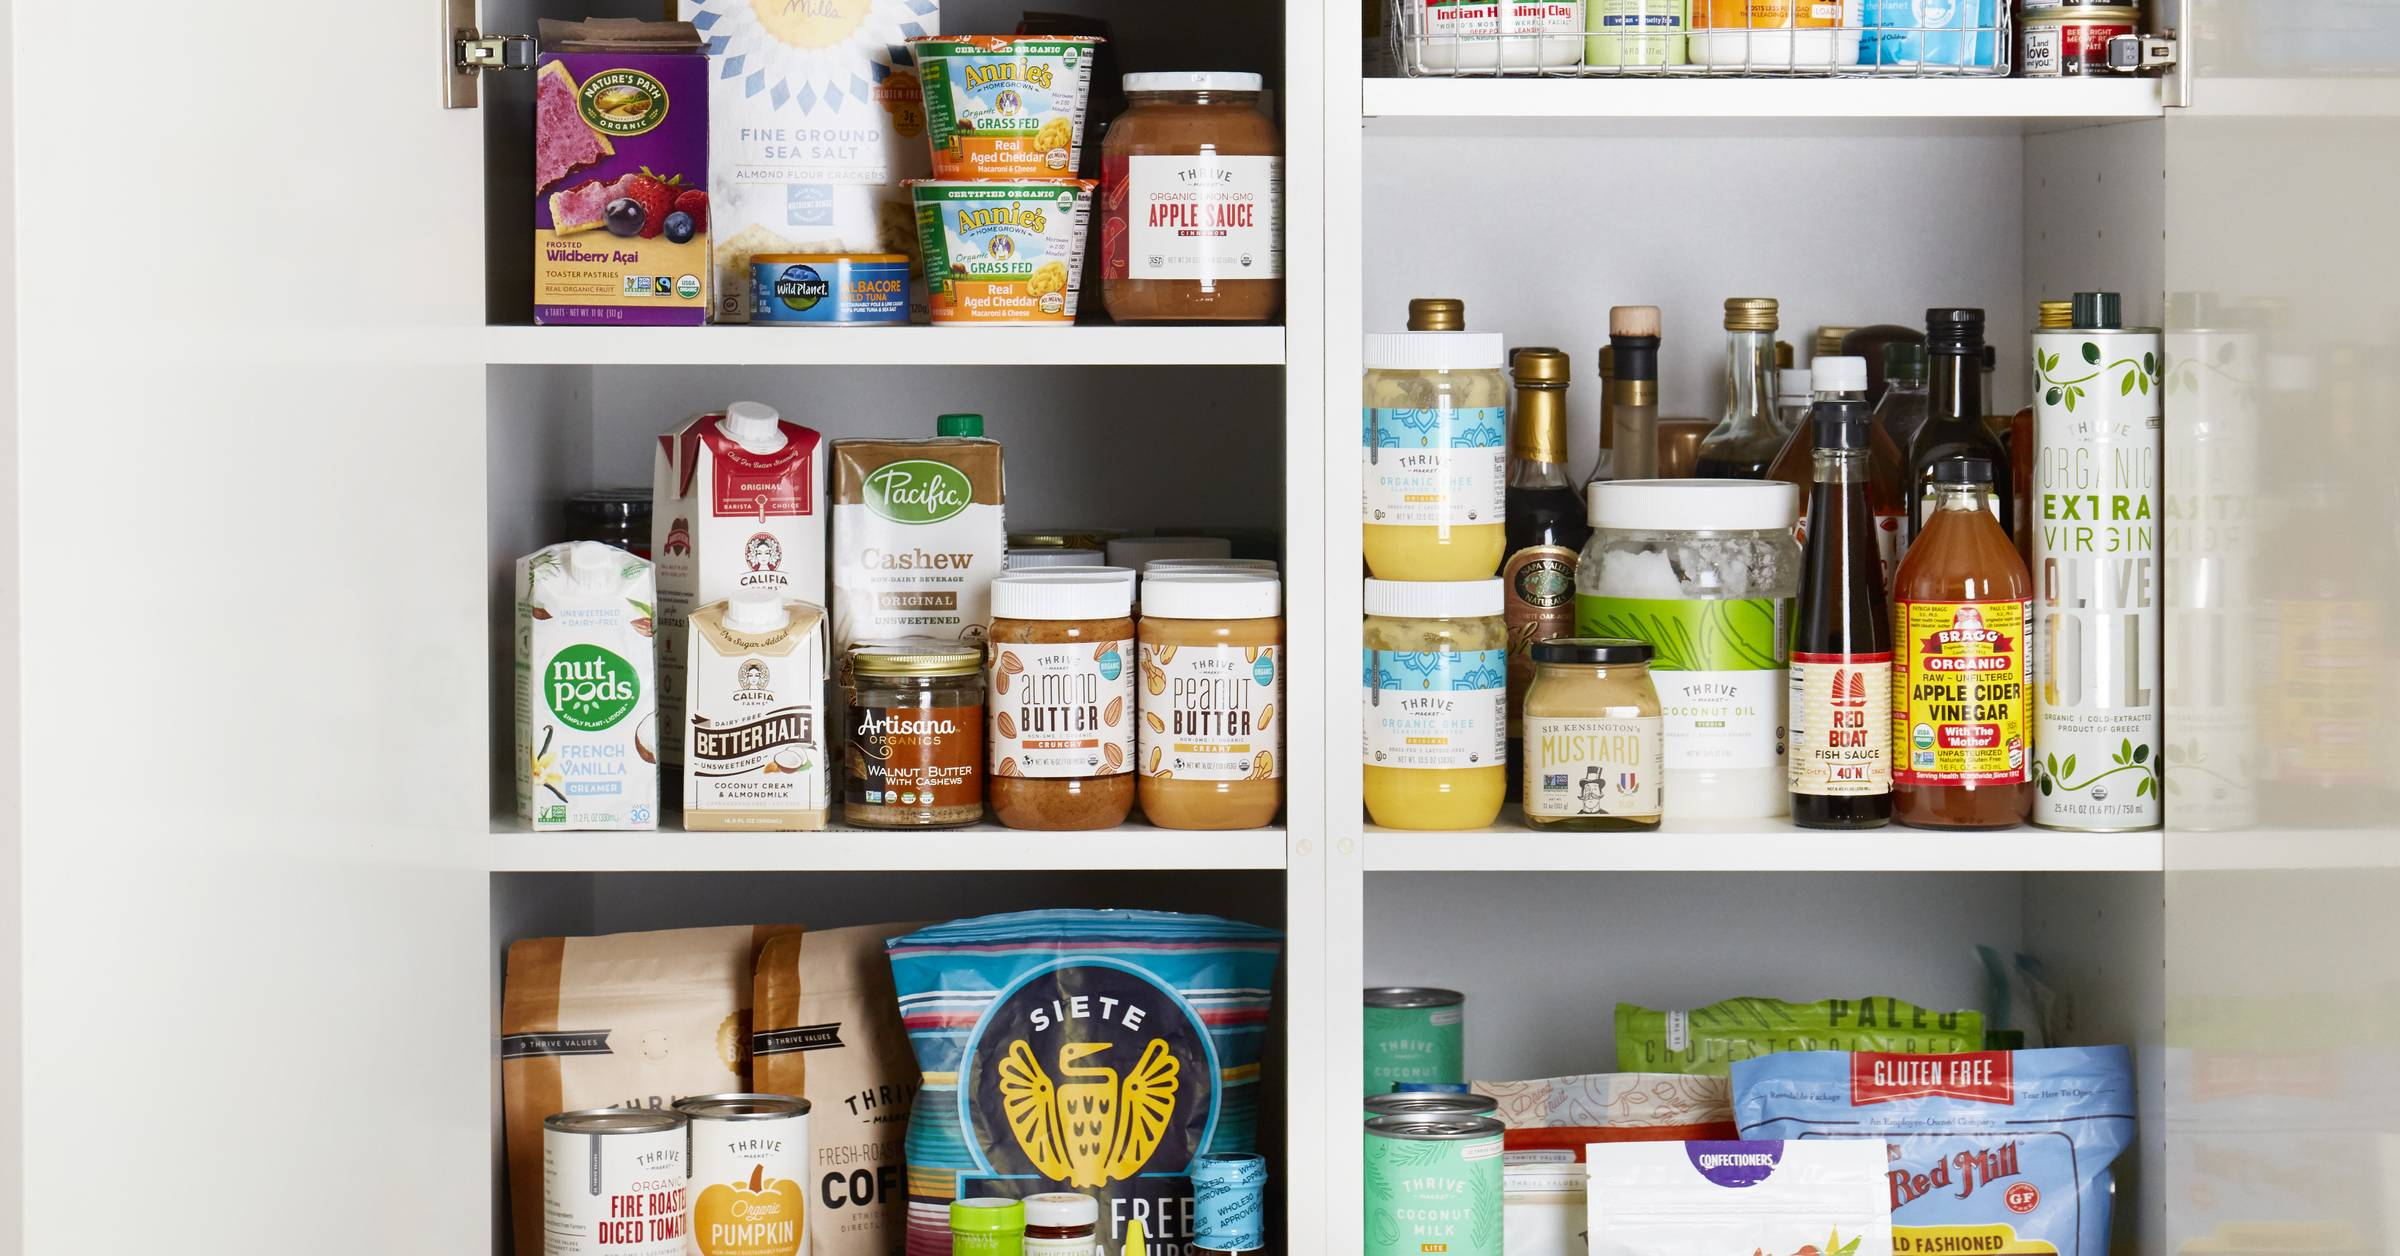 30 Days Free: Thrive Market - Healthy living made easy